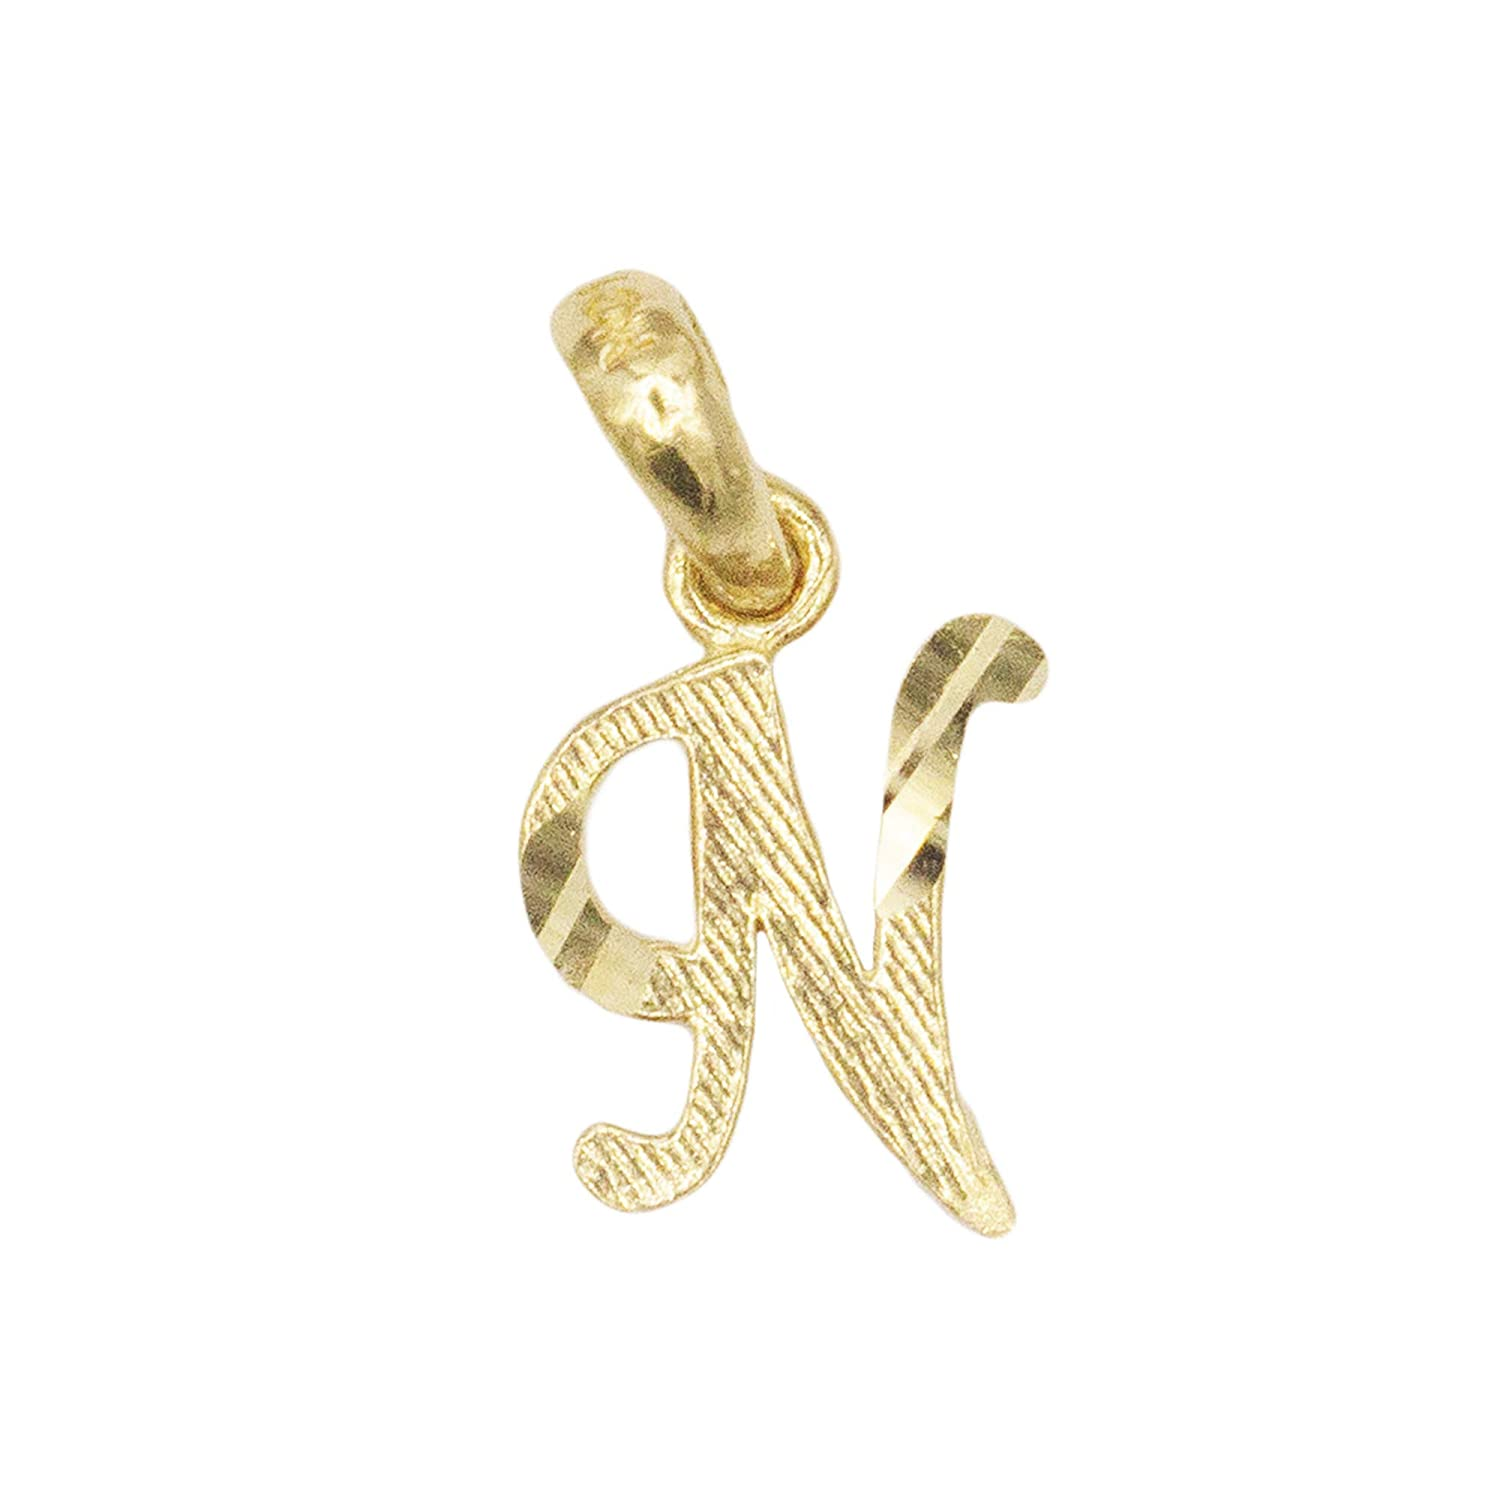 Alphabet Letter Jewelry Small in Size Dainty 14k Real Solid Gold Initial Charm Pendant Available in Other Letters